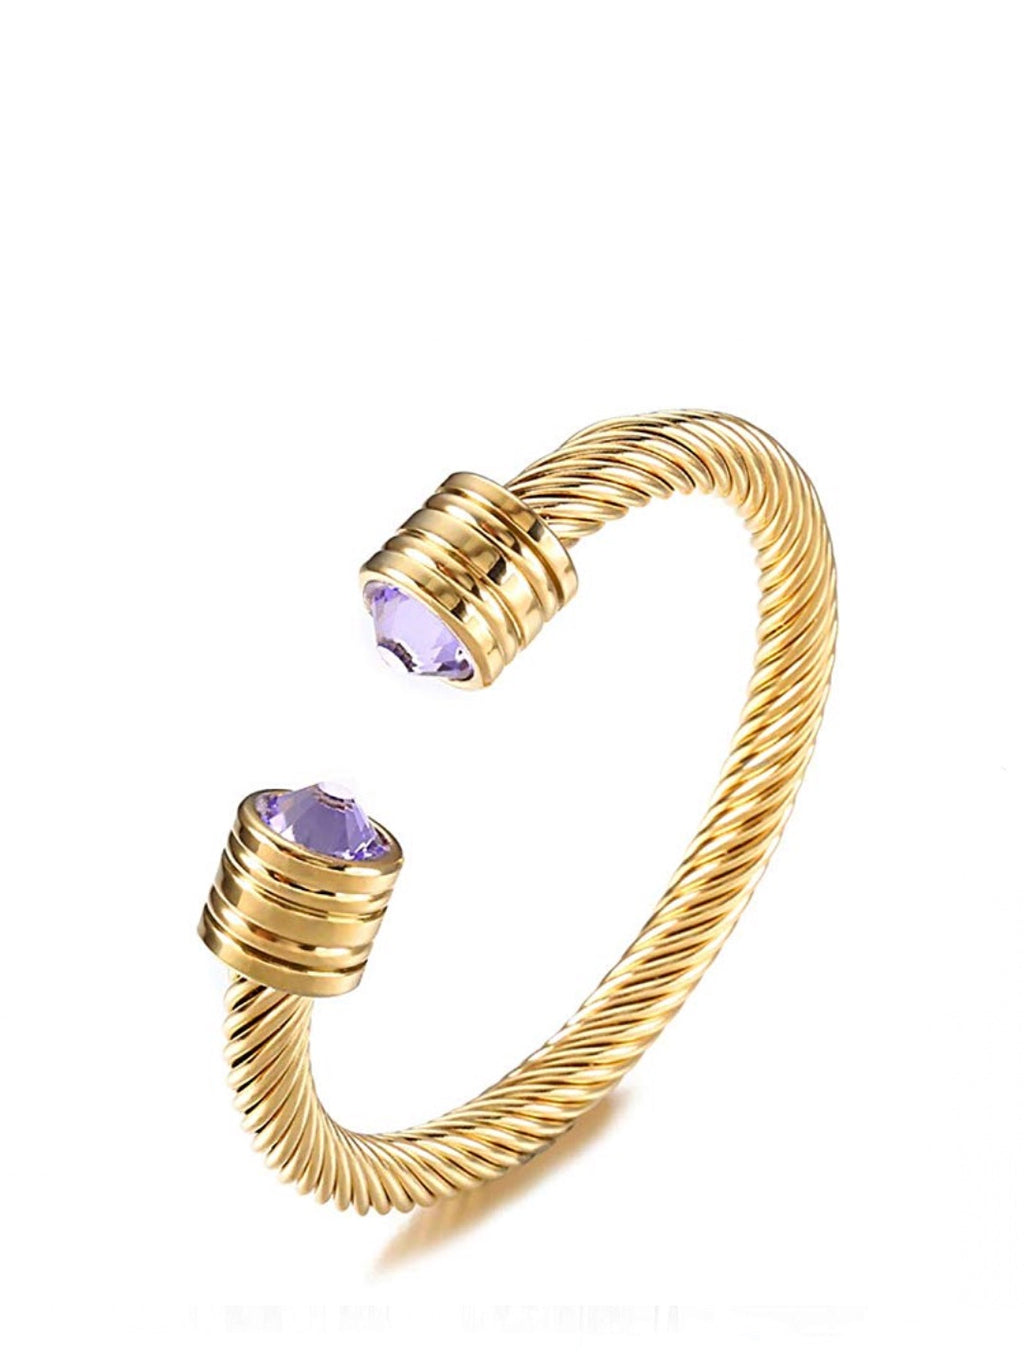 18K Gold Textured Lavender Zirconia open Cuff Bangle